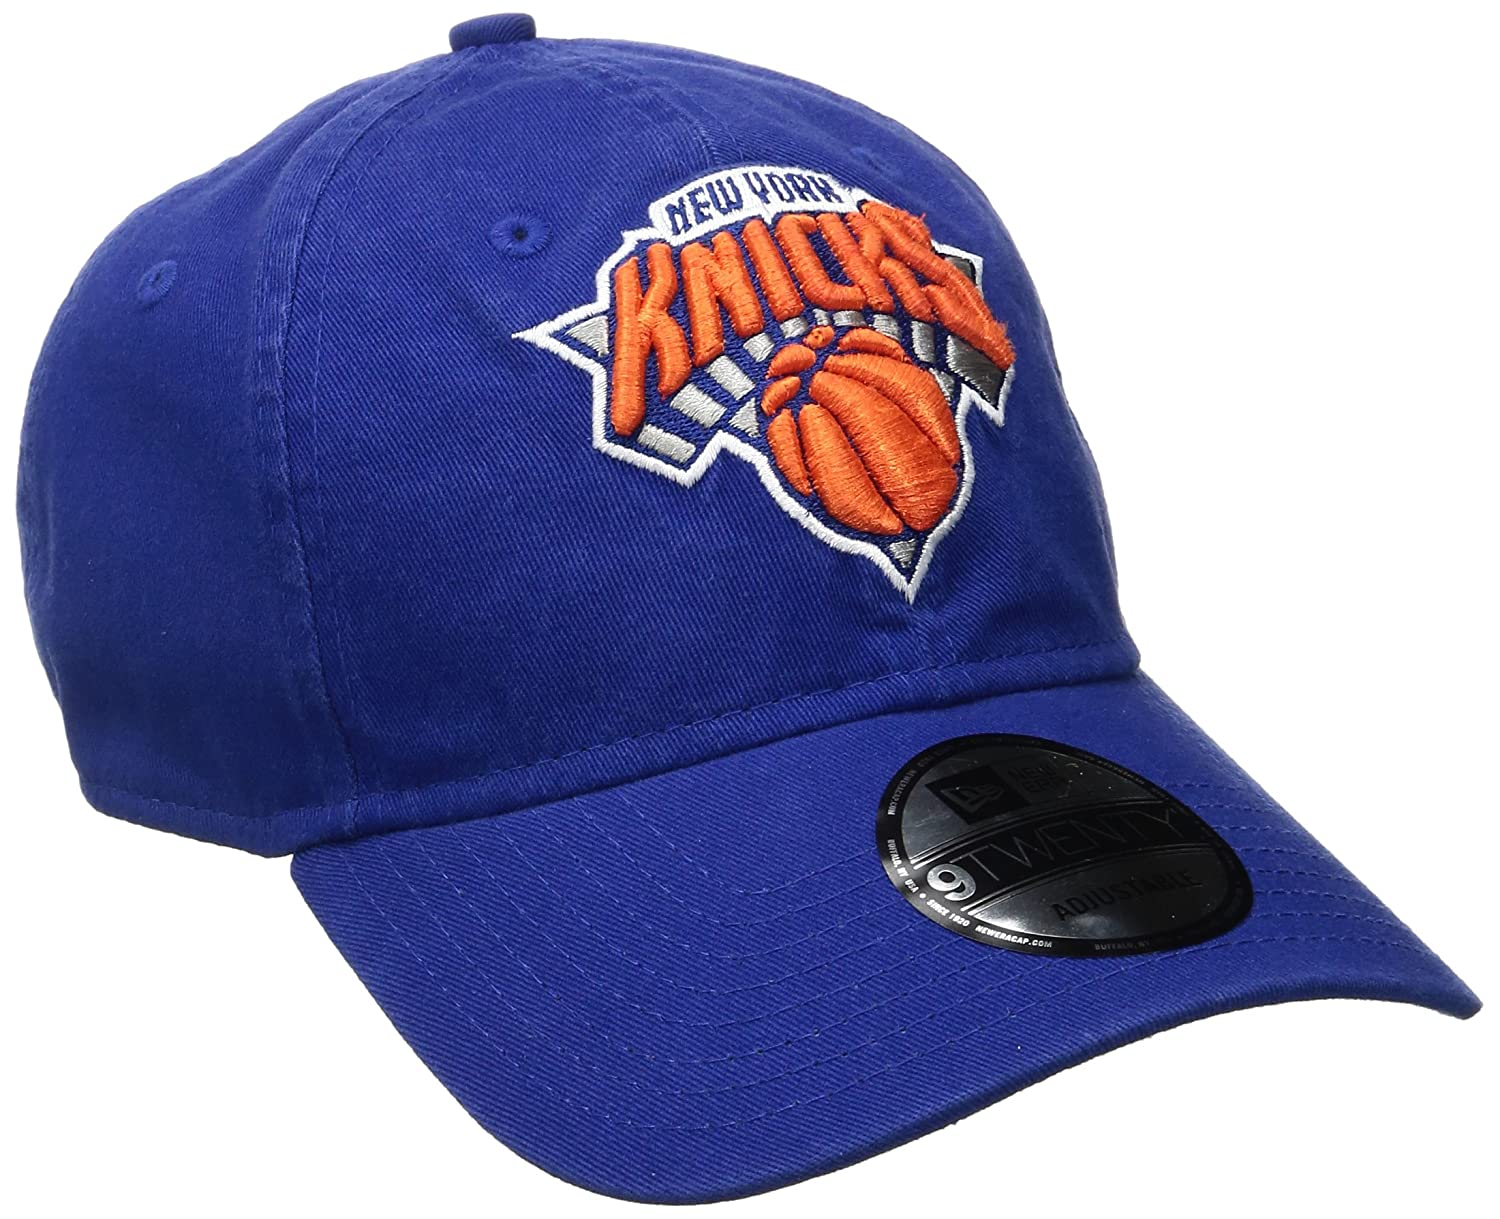 24753c06f0a394 ... 9fifty snapback cap 9d986 52dca; ebay buy online 9da6c 3640f fashion  england new era core classic new york knicks baseball caps